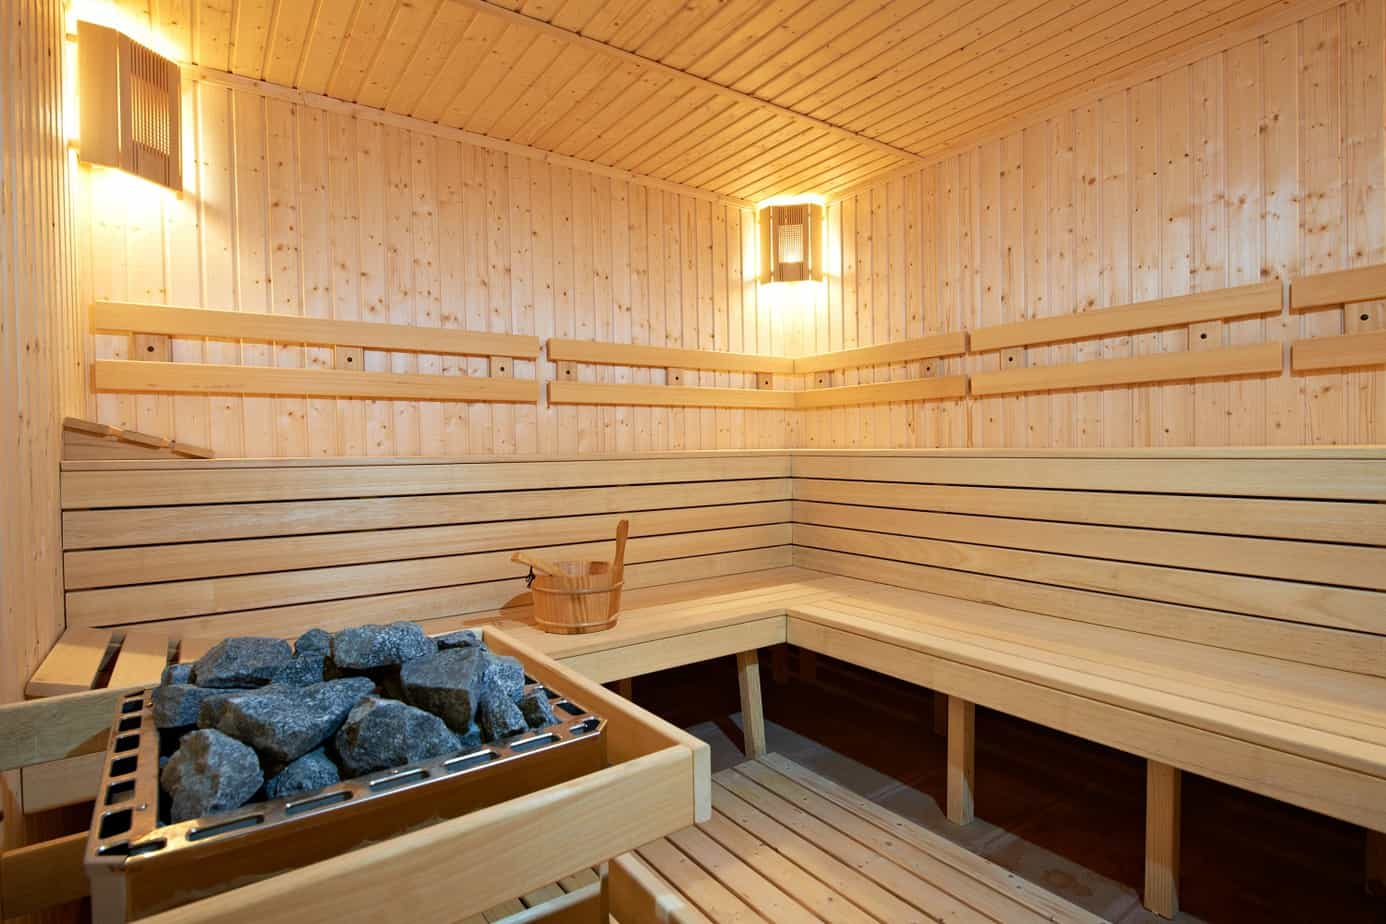 New wooden Finland Sauna